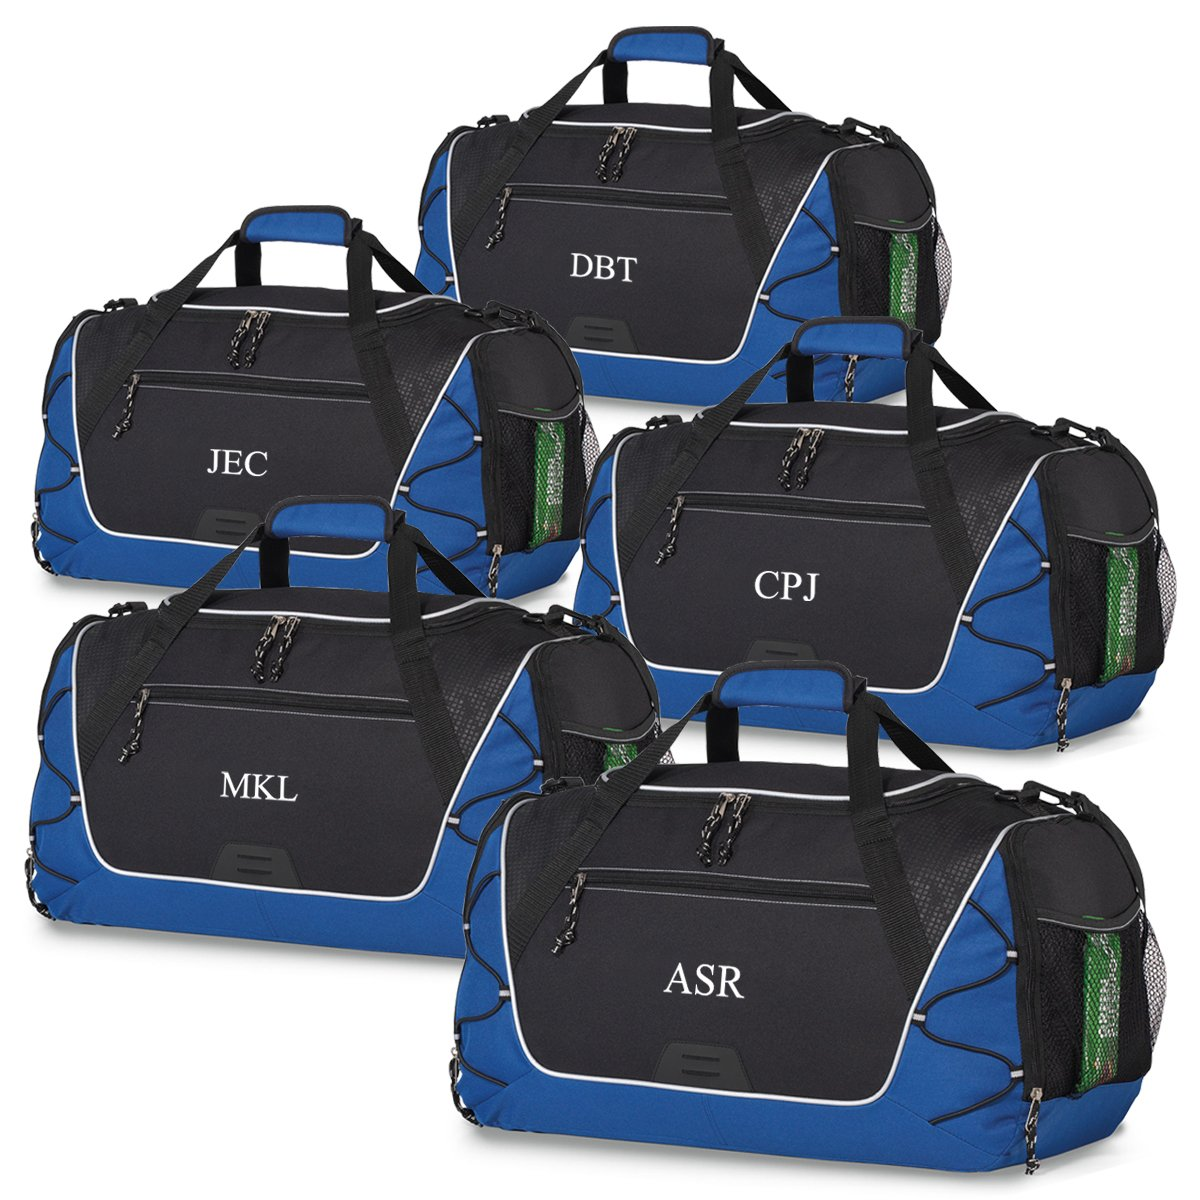 Set of 5, Blue Personalized Sports Duffel Bag – Travel, Camping Bags for Men by A Gift Personalized